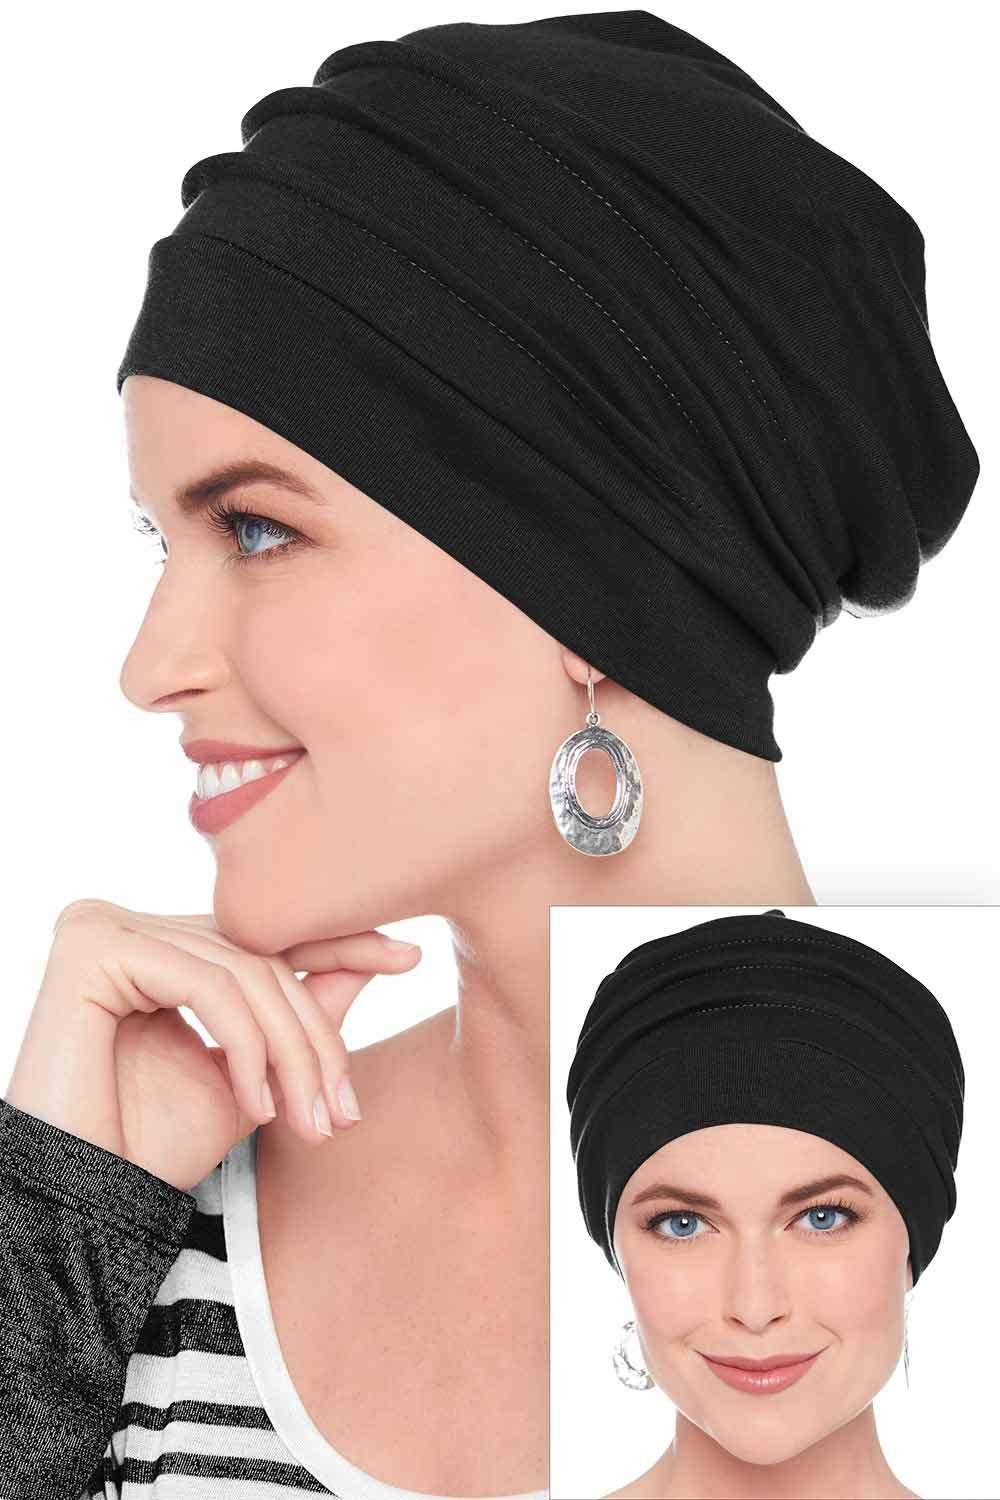 Headcovers Unlimited 100% Cotton Slouchy Snood Caps for Women with Chemo Cancer Hair Loss Black